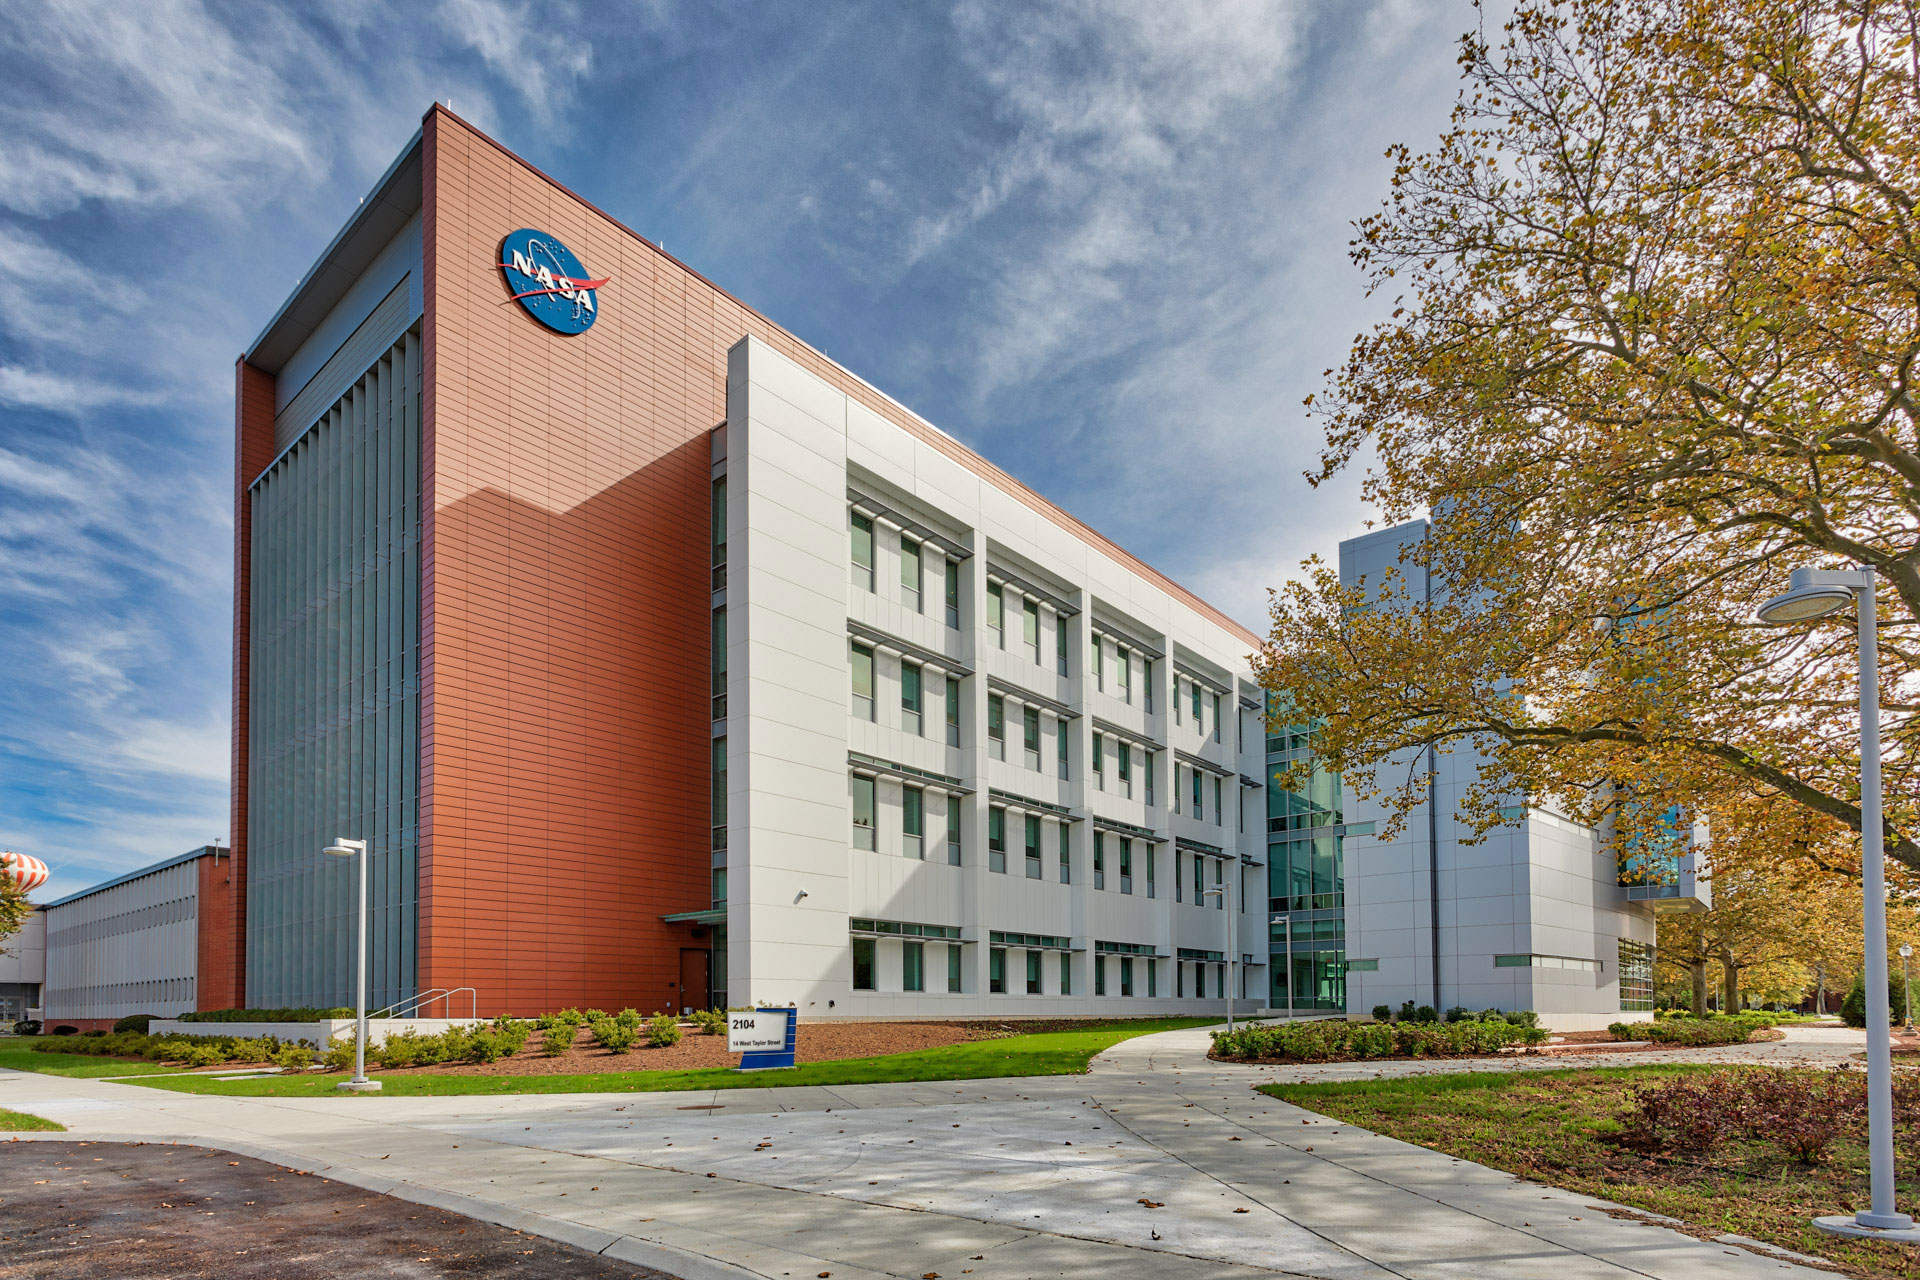 NASA Langley, Measurement Systems Laboratory, Hampton, Virginia, AECOM WM Jordan, CEI Materials, Scott Wertz, Exterior, Daytime, 6